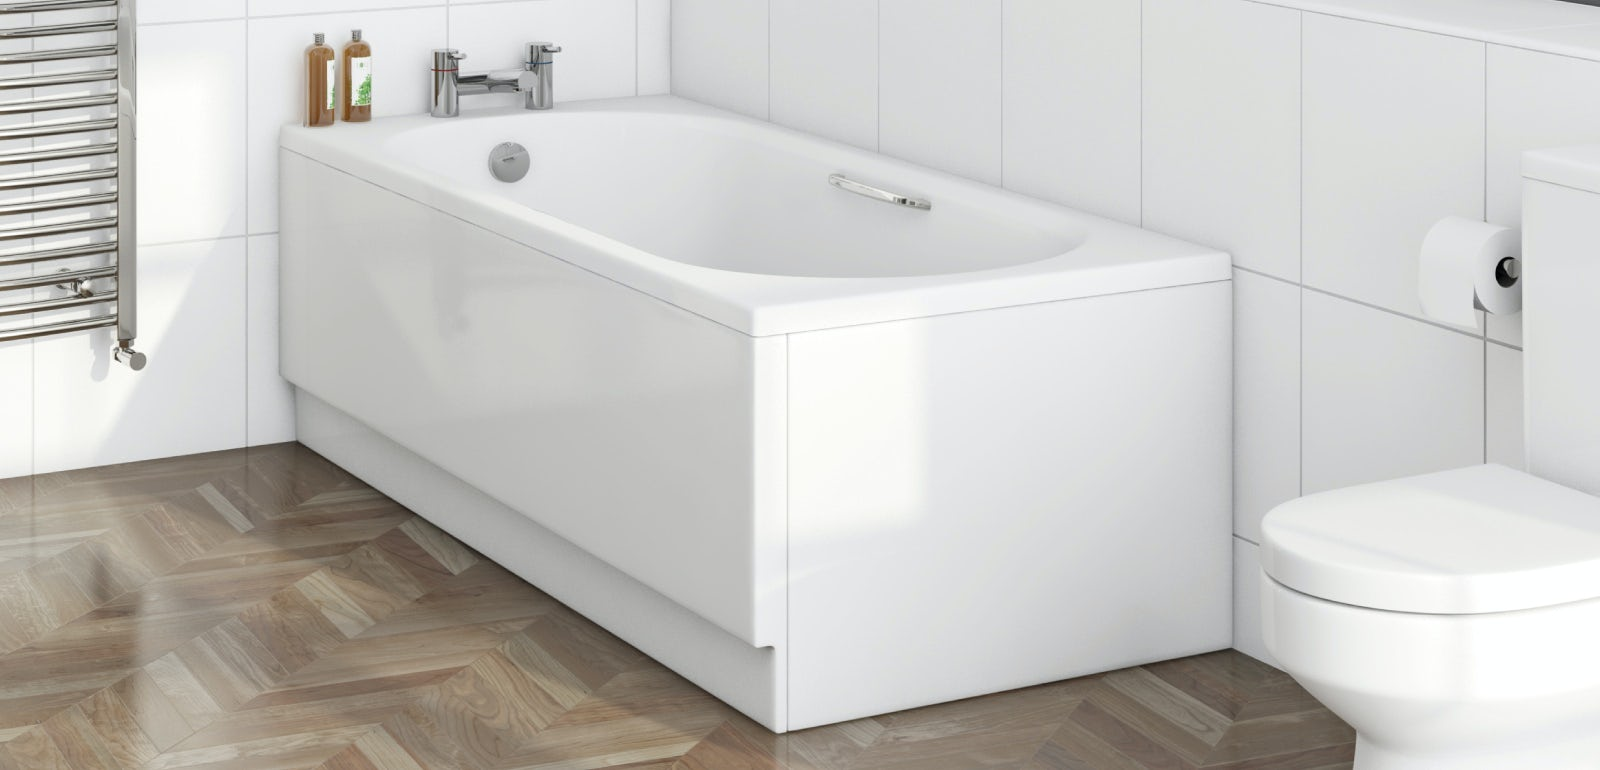 What is a standard bath size Standard width of bathtub